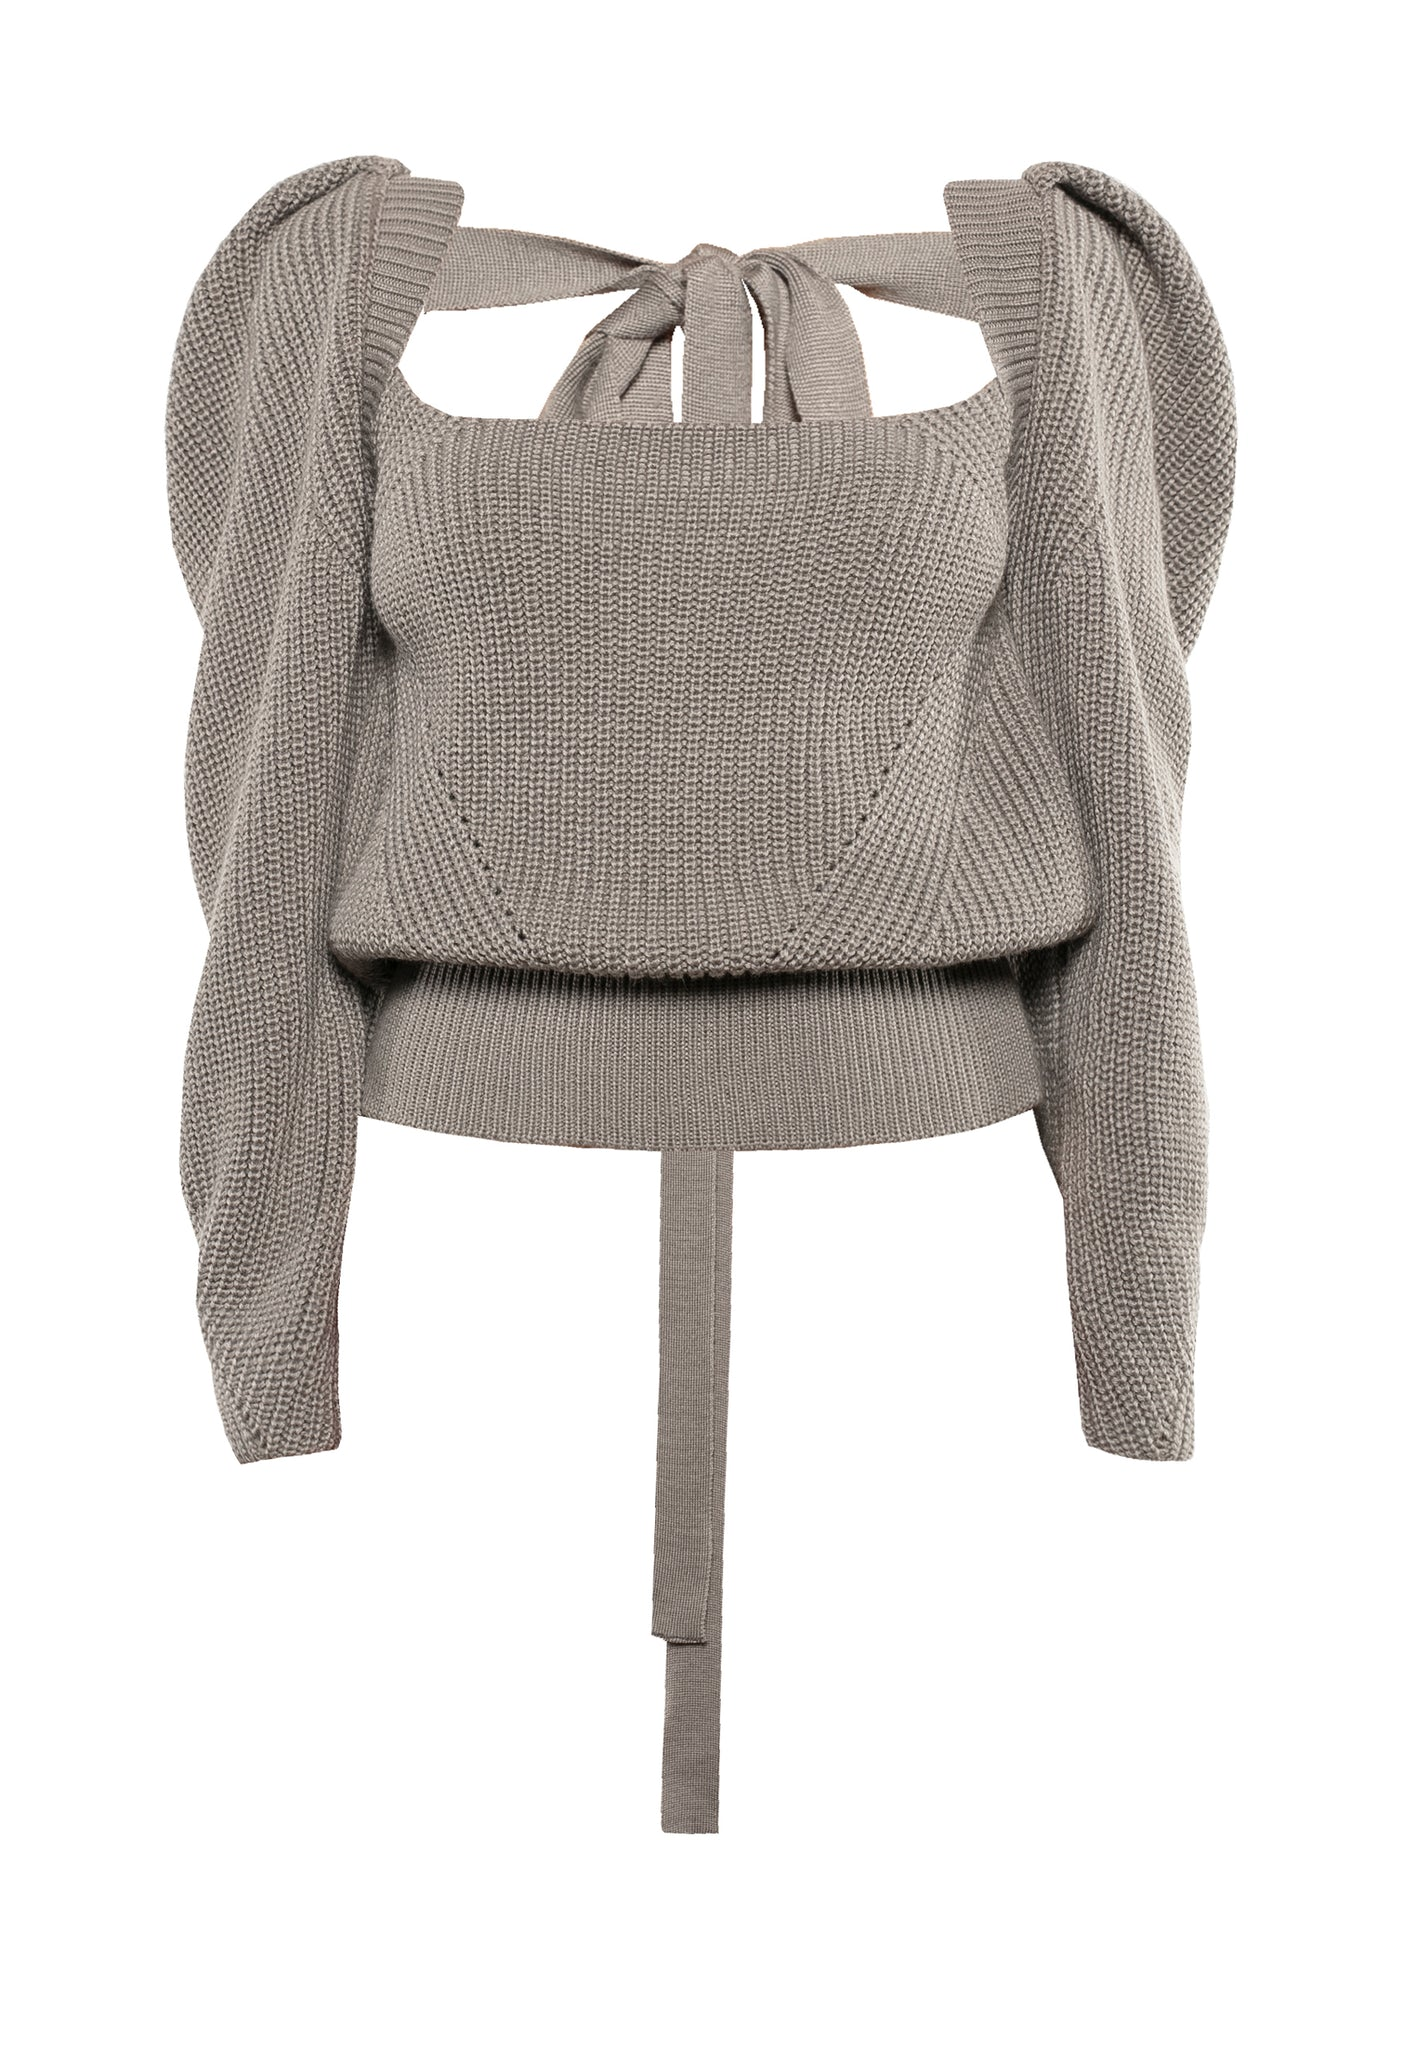 Rachel sweater, front view